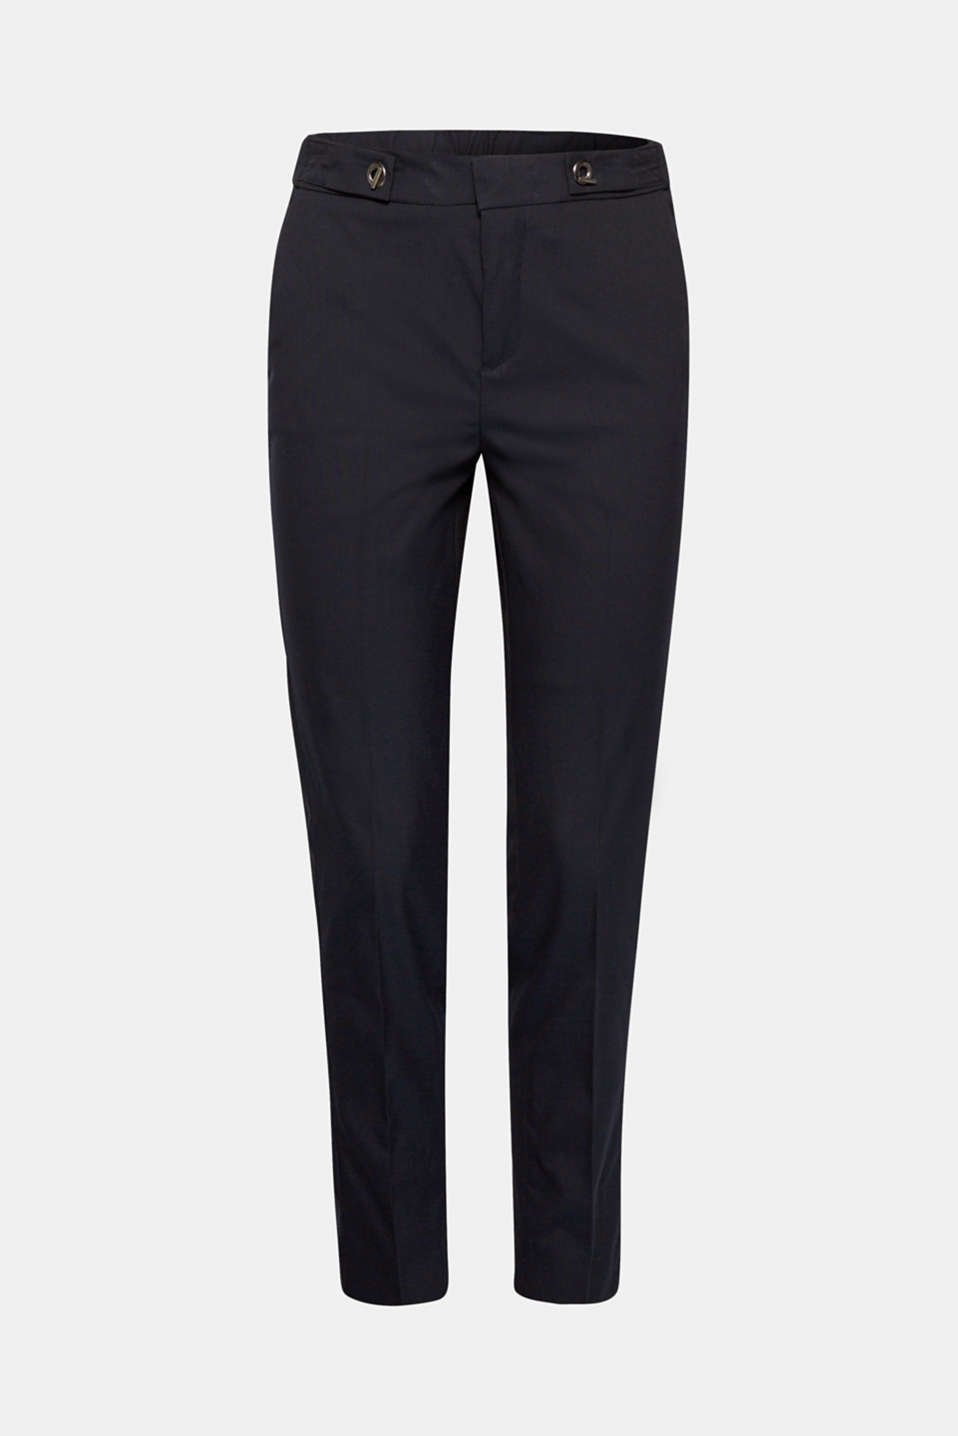 Comfortable chic: These lightweight business tracksuit bottoms with added stretch for comfort feature a comfortable, elasticated waistband with embellished waist straps and pressed pleats for an elegant, eye-catching finish!